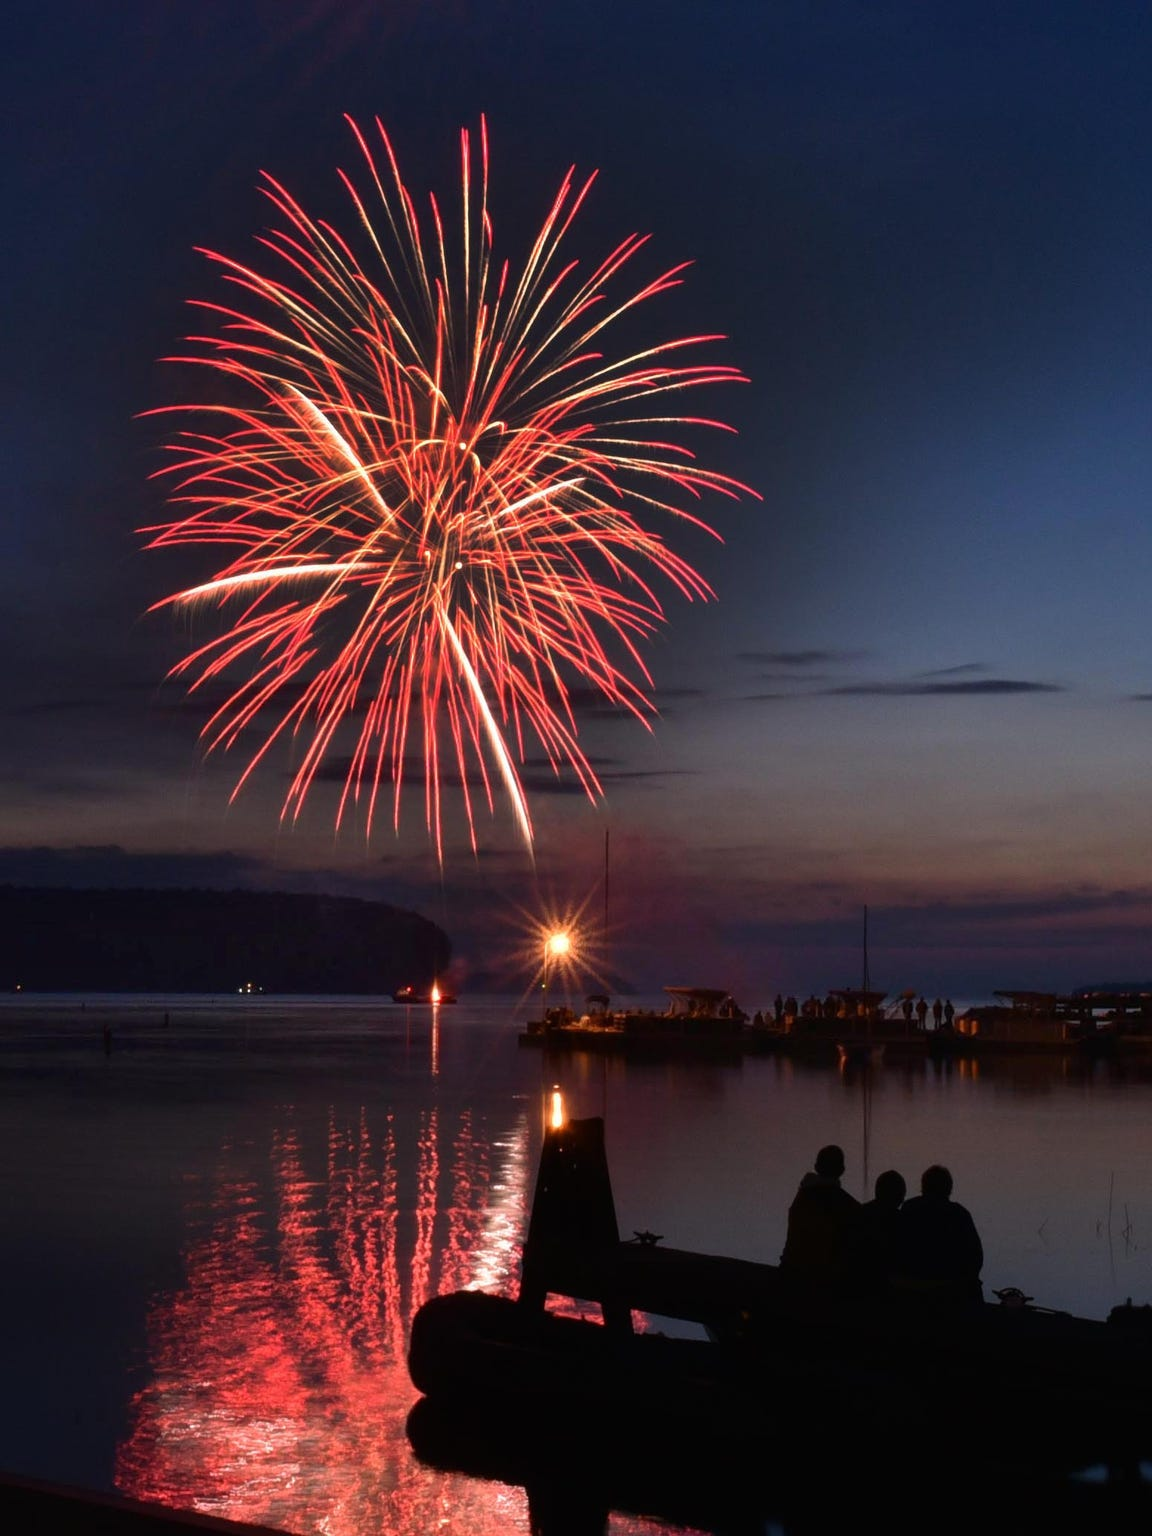 Fireworks will be blasting all over the Fox Valley come July 3 and 4.